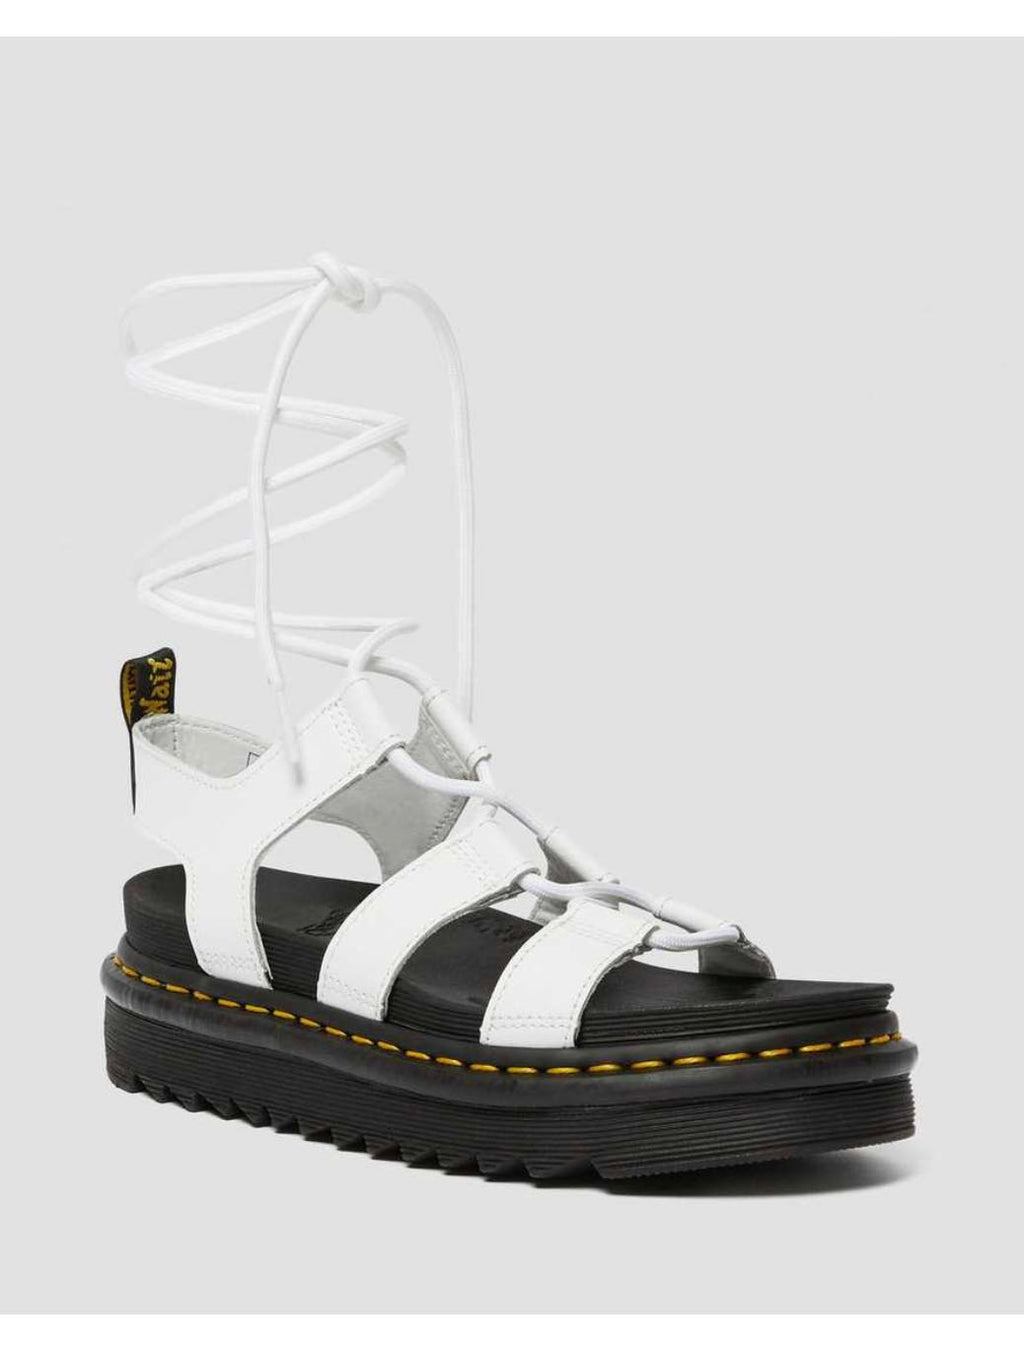 Dr. Martens Nartilla Gladiator in White